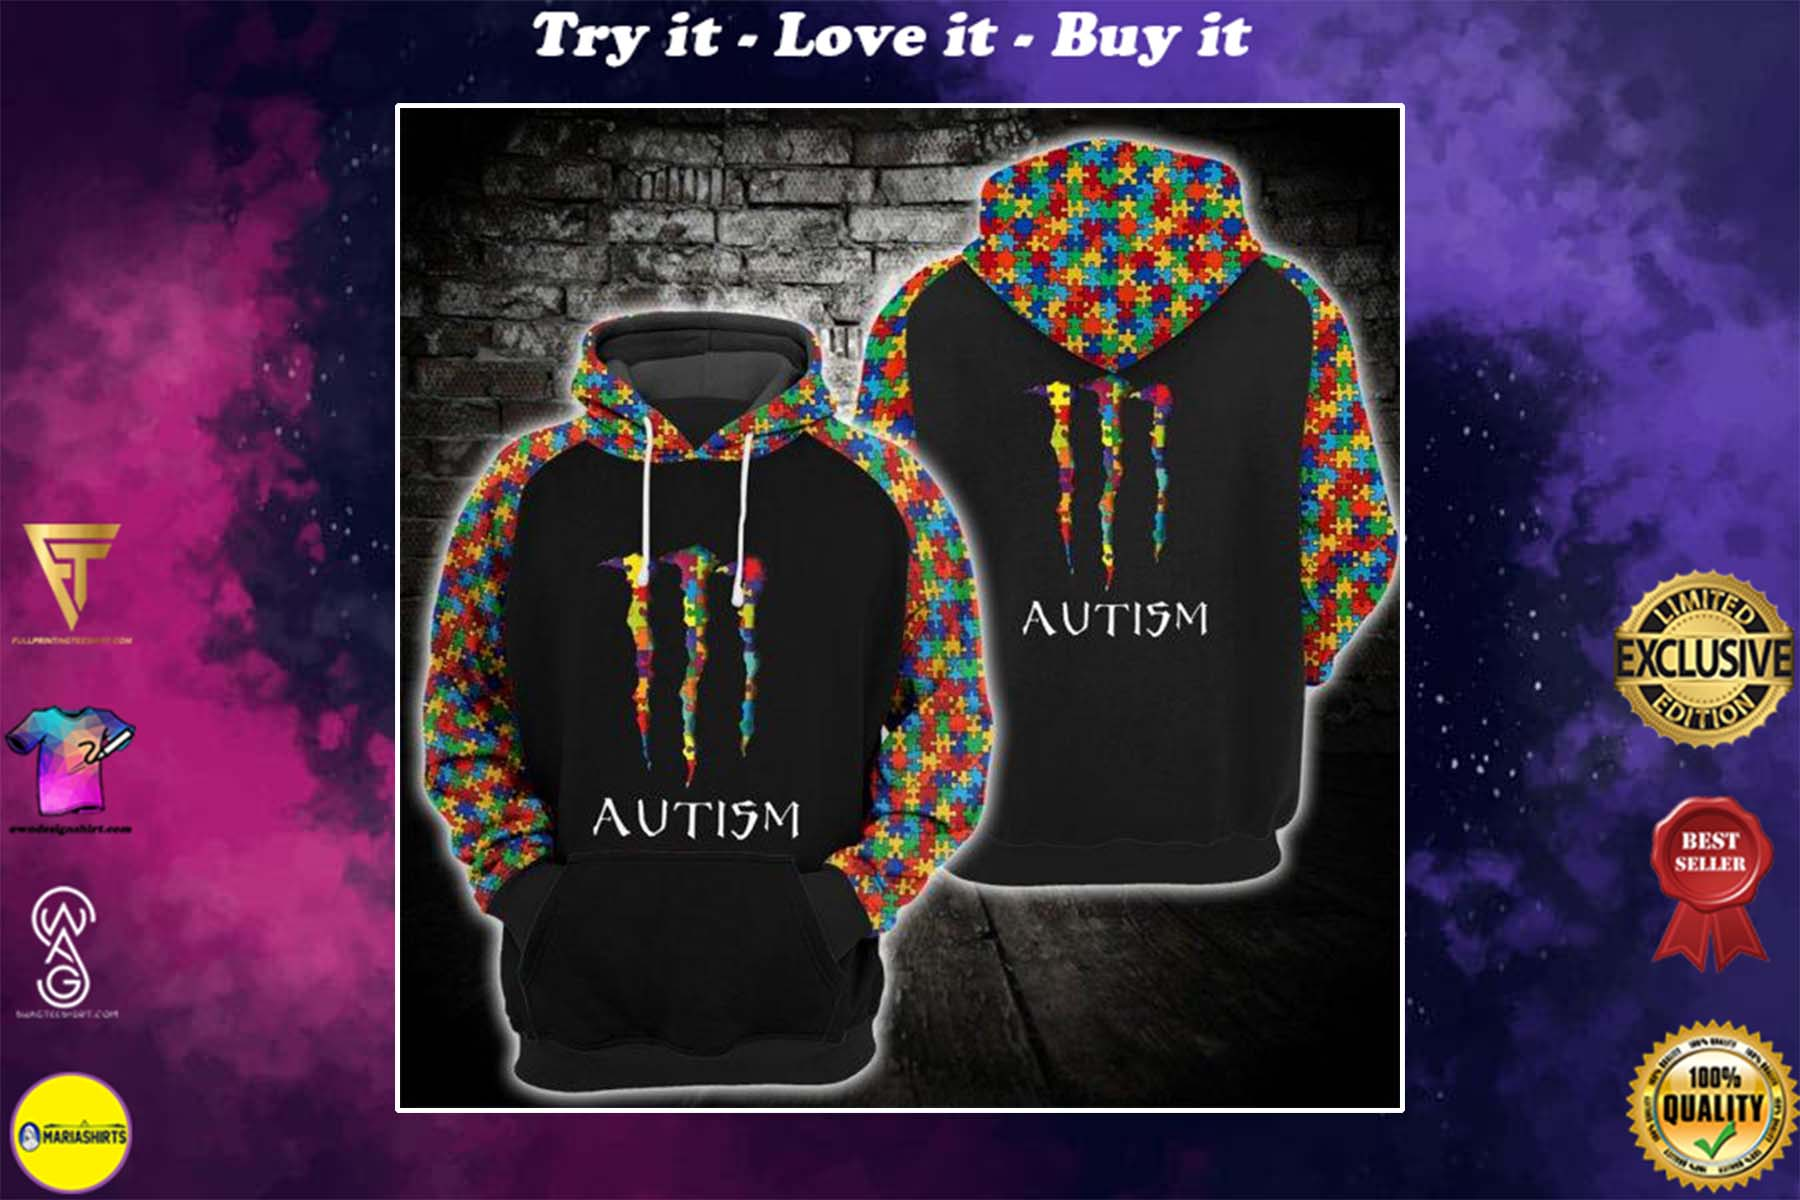 [special edition] monster energy autism awareness full printing shirt - maria